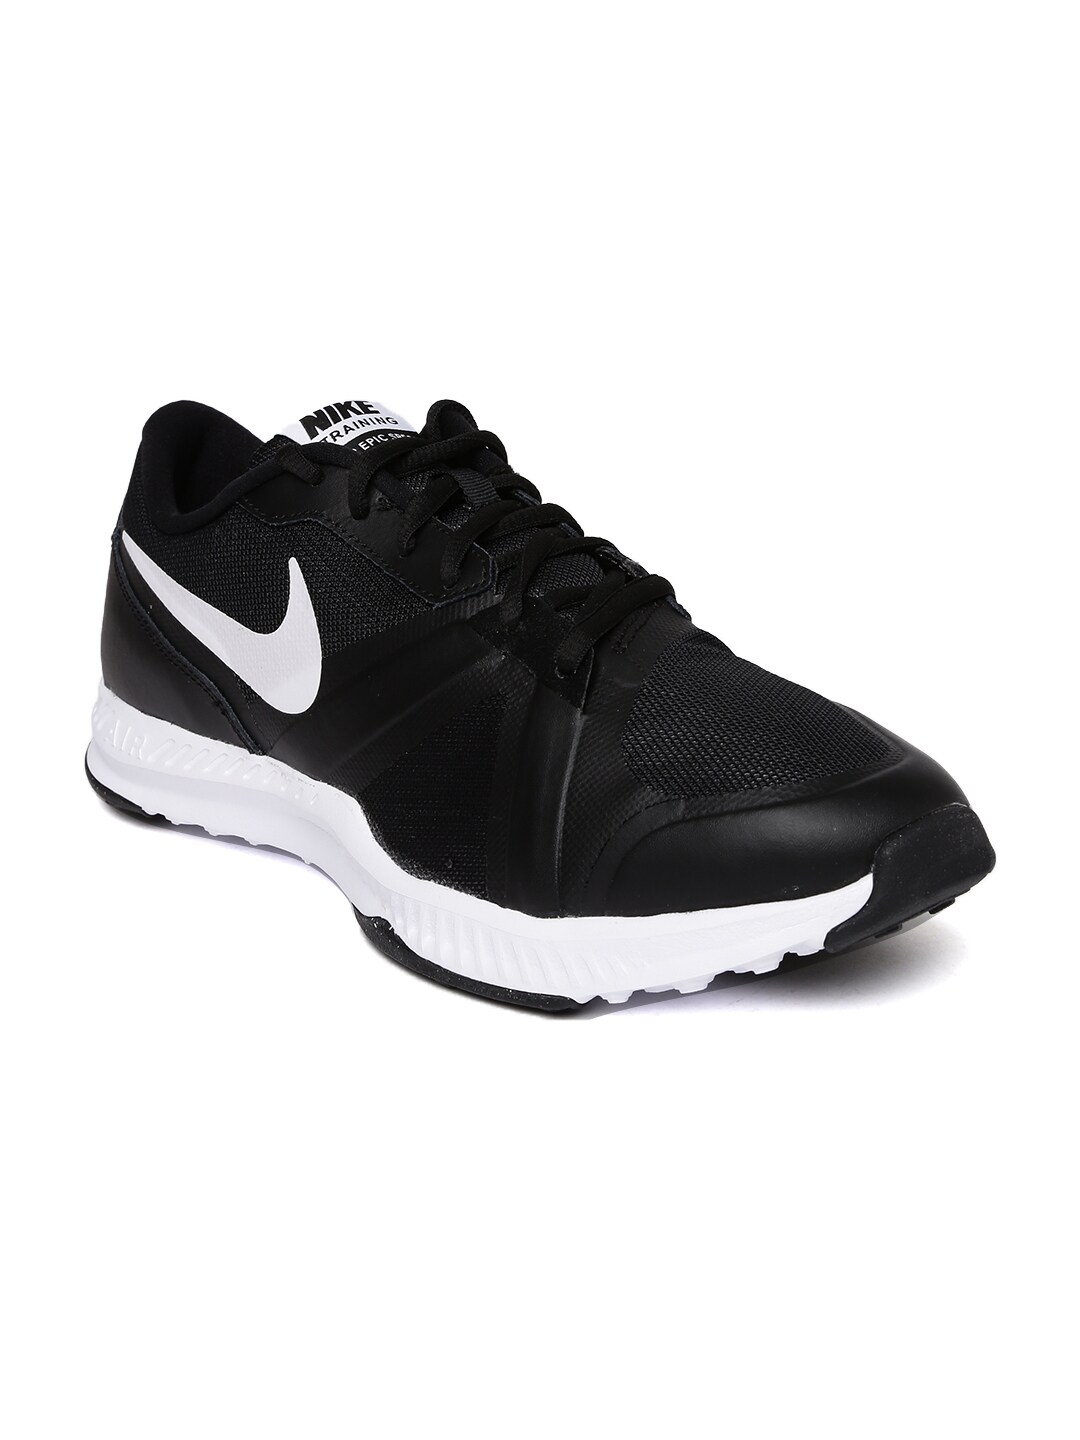 5a8d8e372975 Nike 637382-001 Men Black The Overplay Viii Basketball Shoes - Best ...